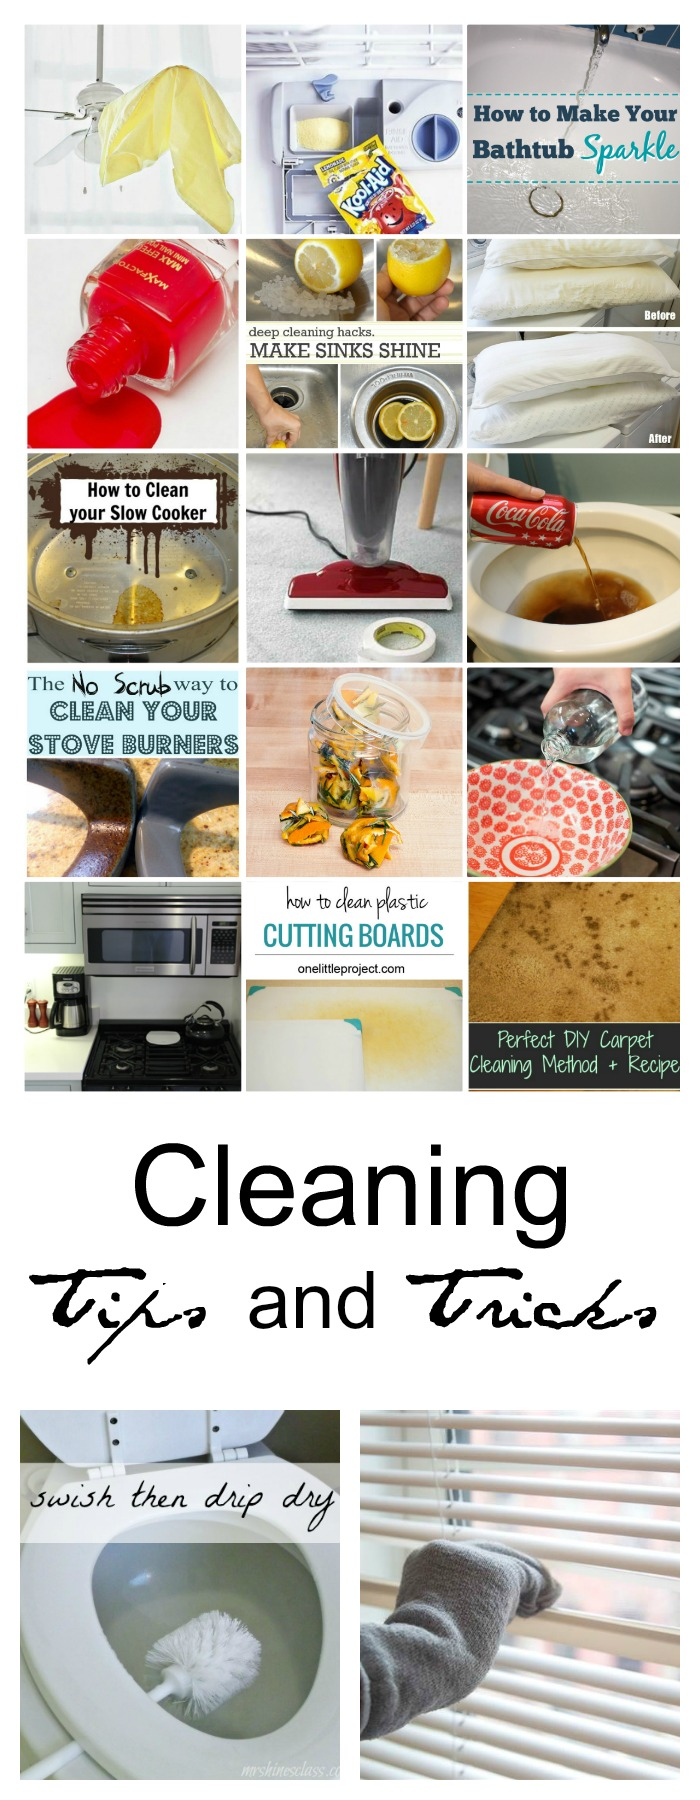 Cleaning-Tips-Tricks-Home-Pin.jpg1